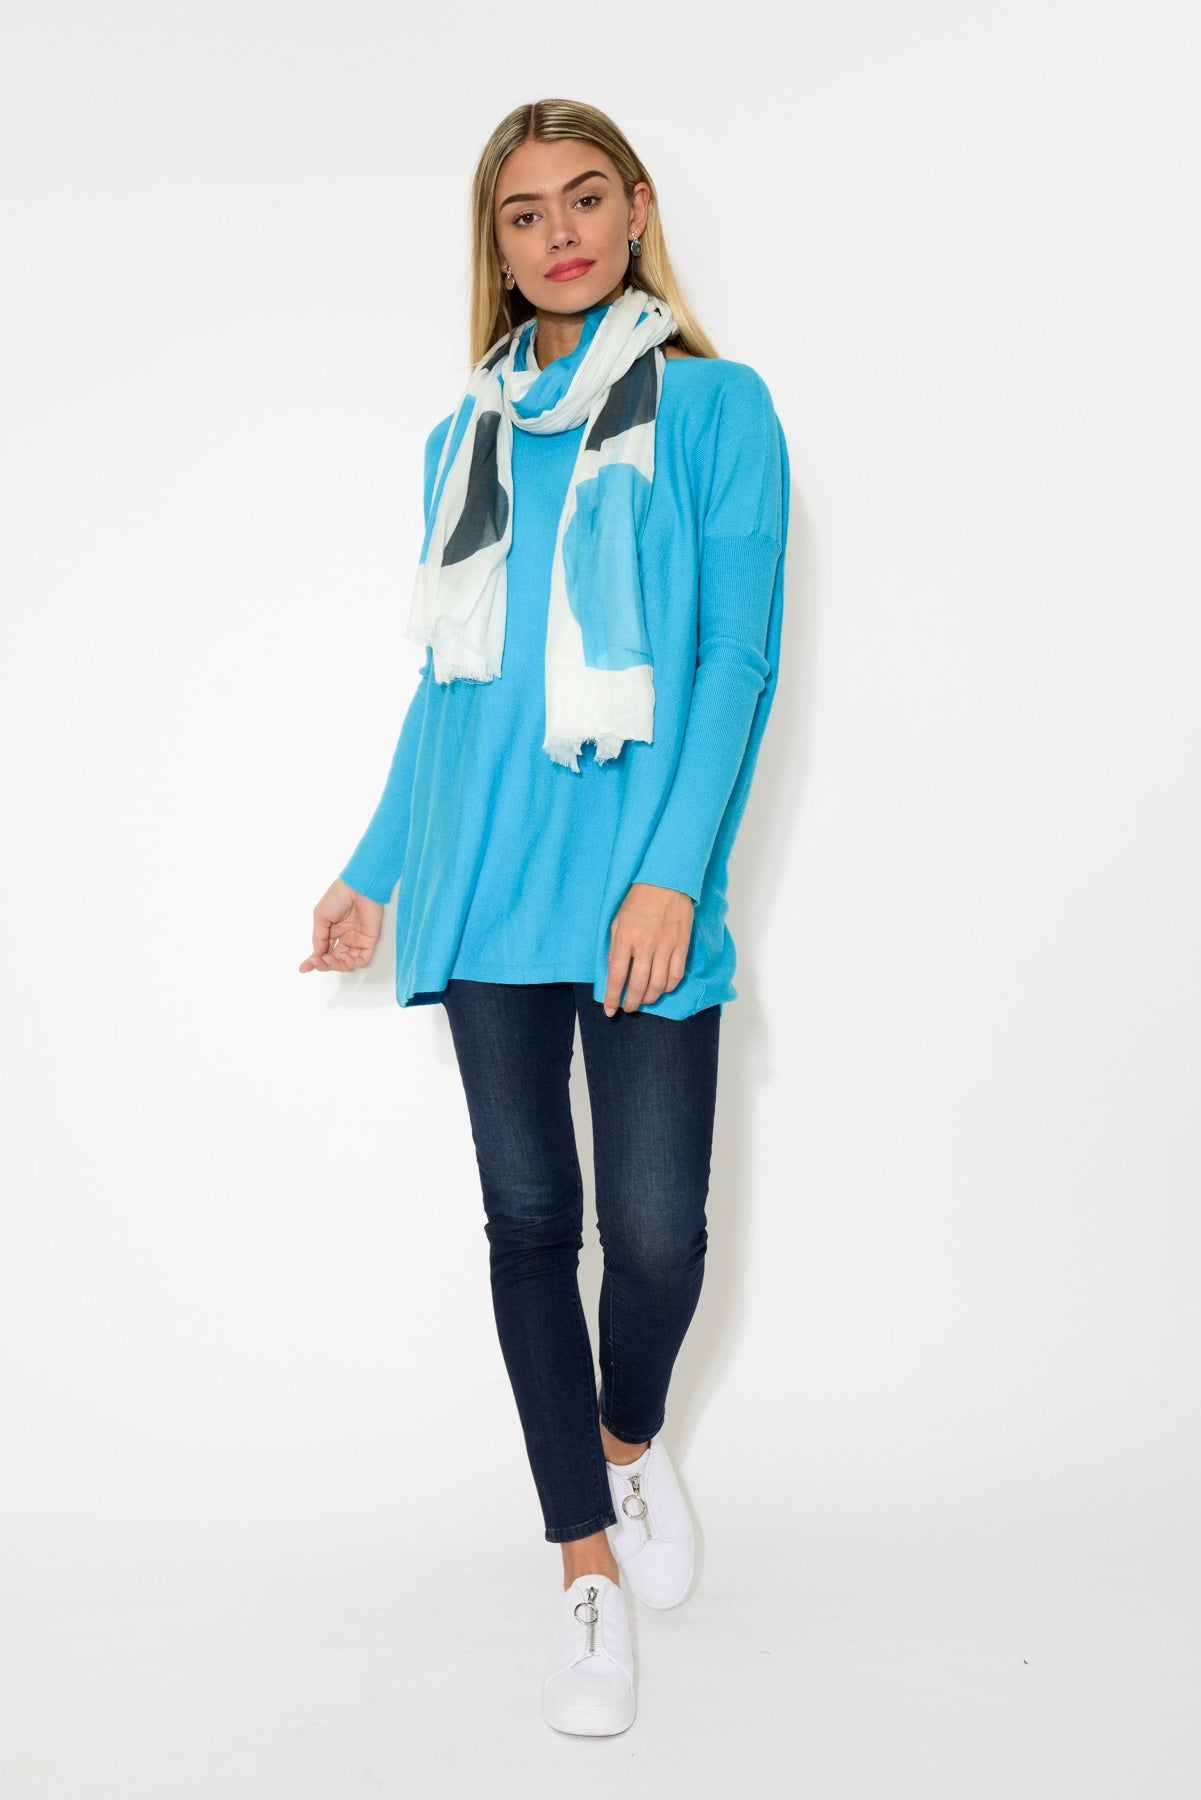 Marnie Blue Drape Jumper - Blue Bungalow